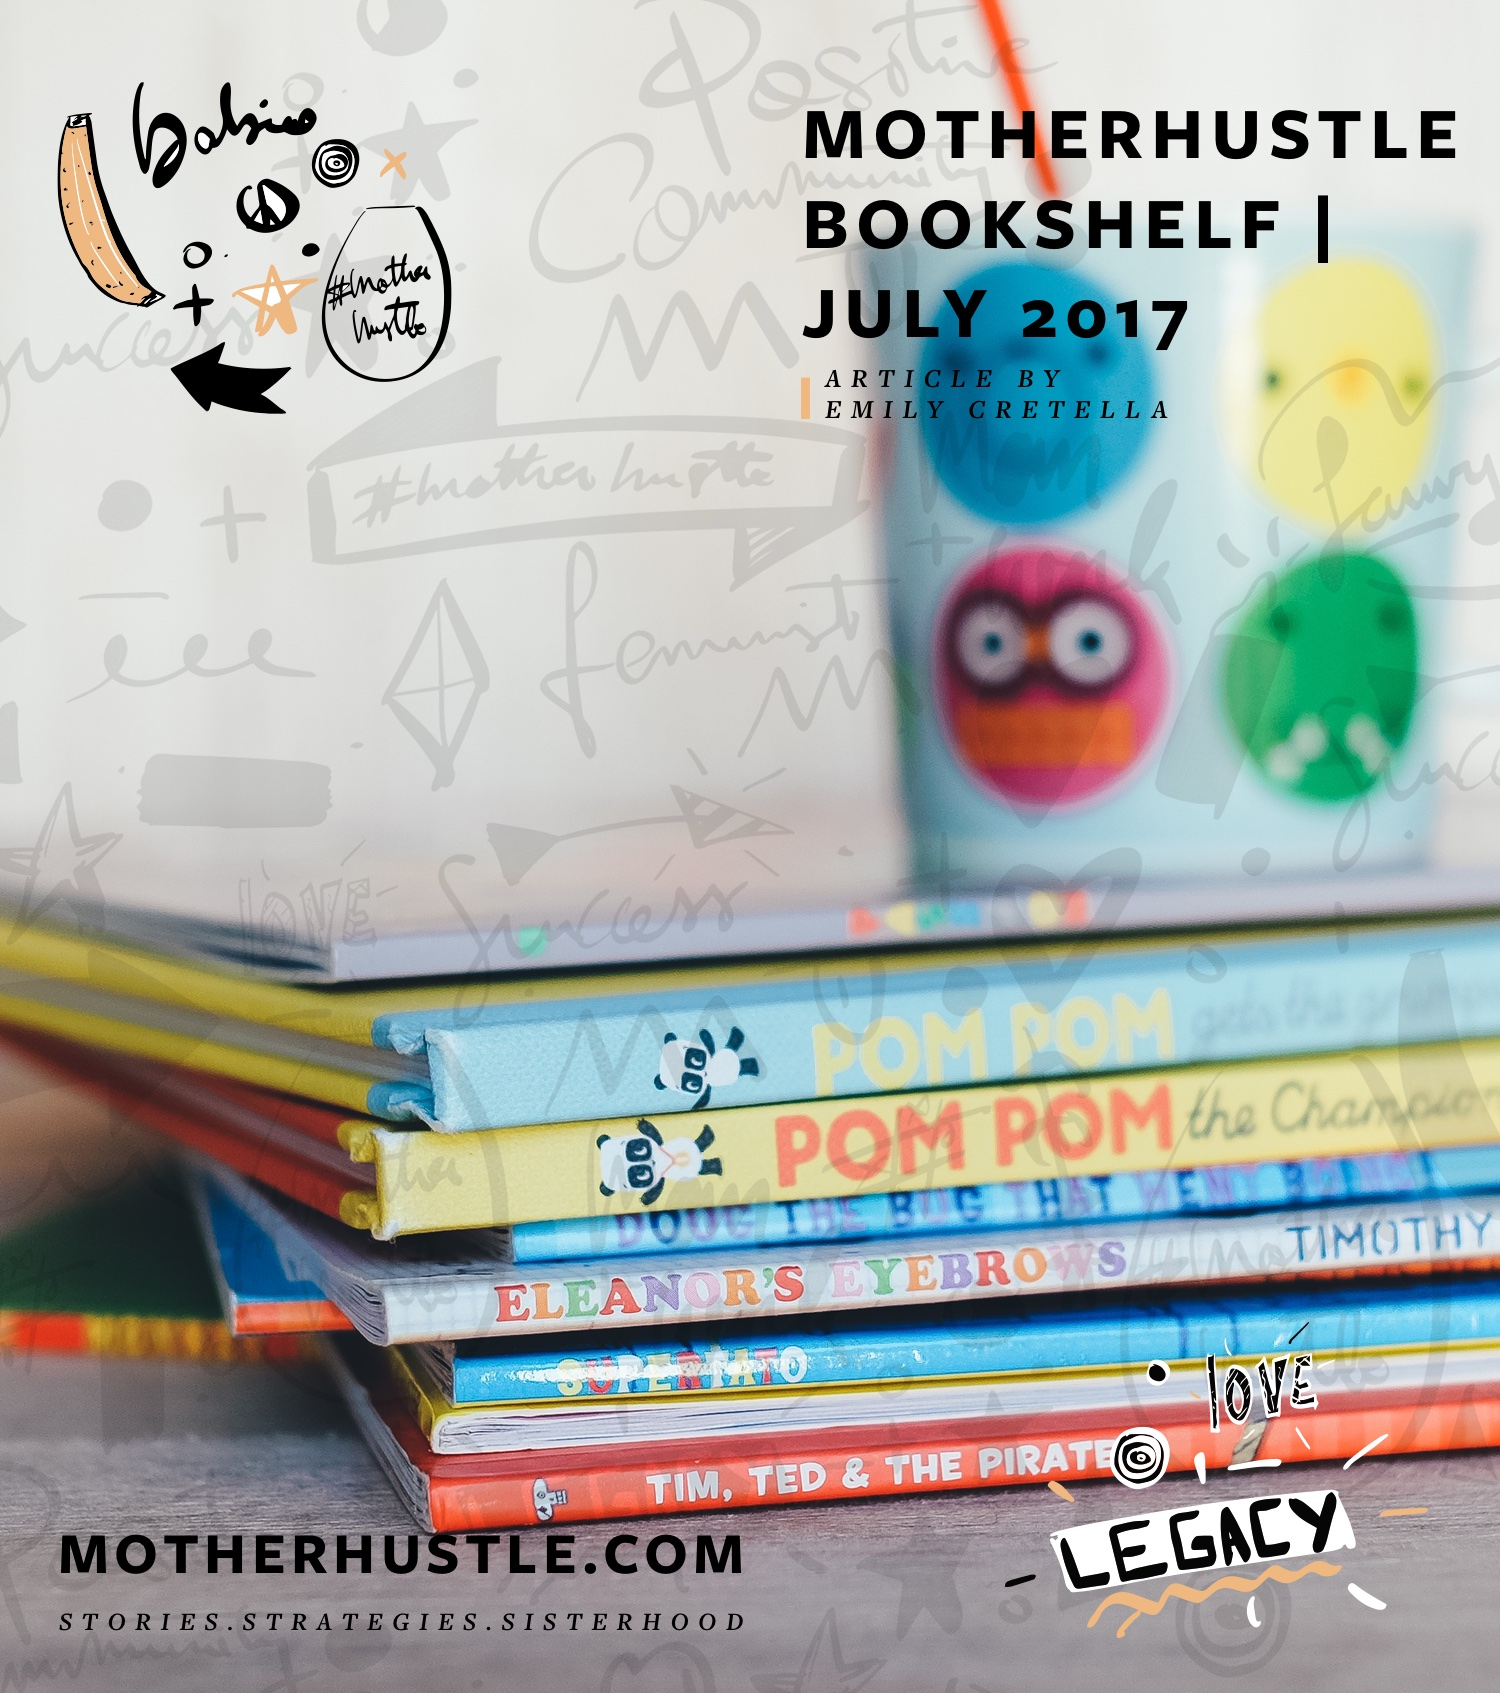 MotherHustle Bookshelf July 2017